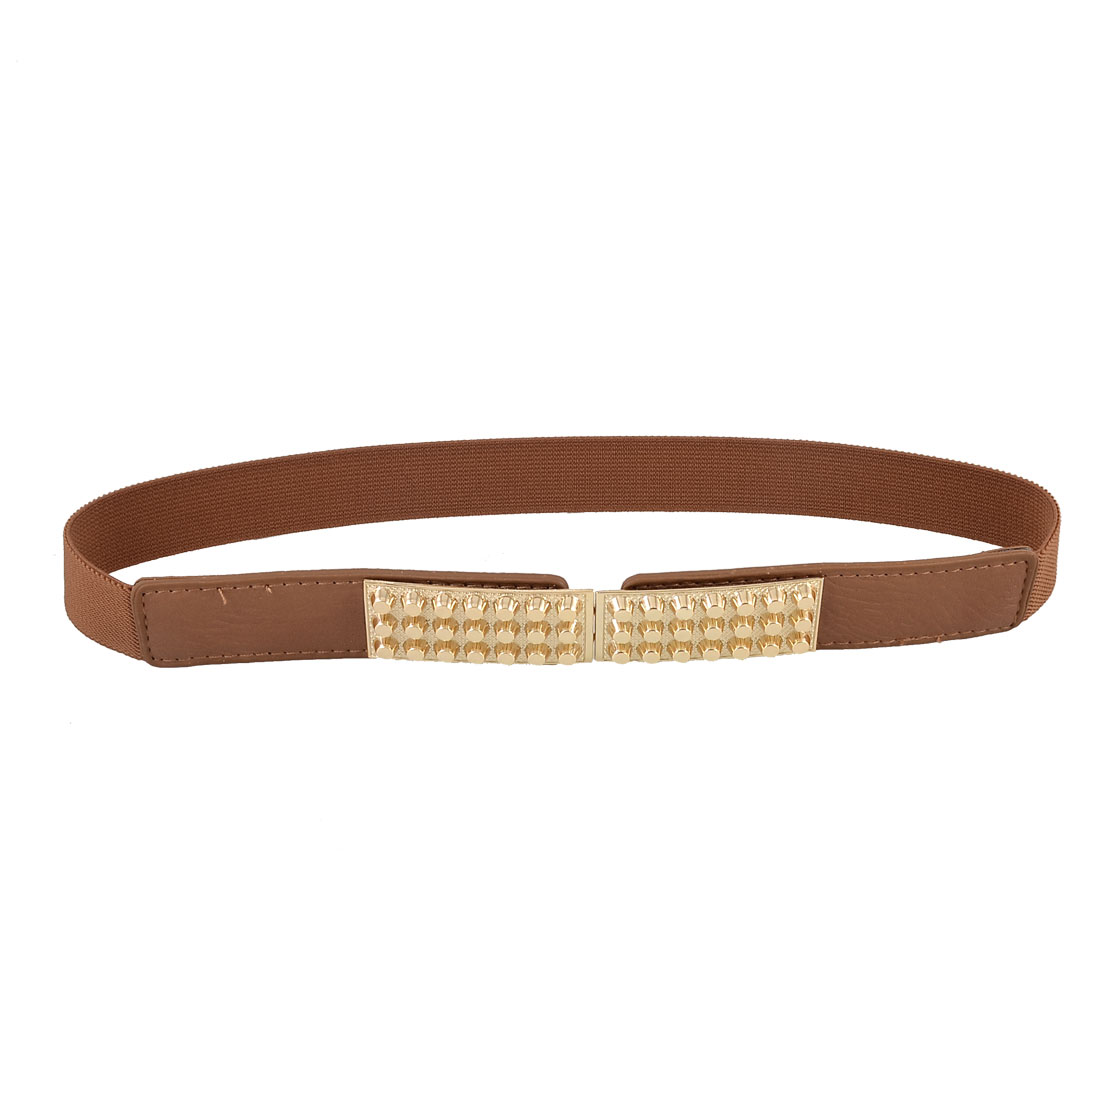 Brown Gold Tone Interlocking Buckle Stretchy Skinny Cinch Waistband Belt